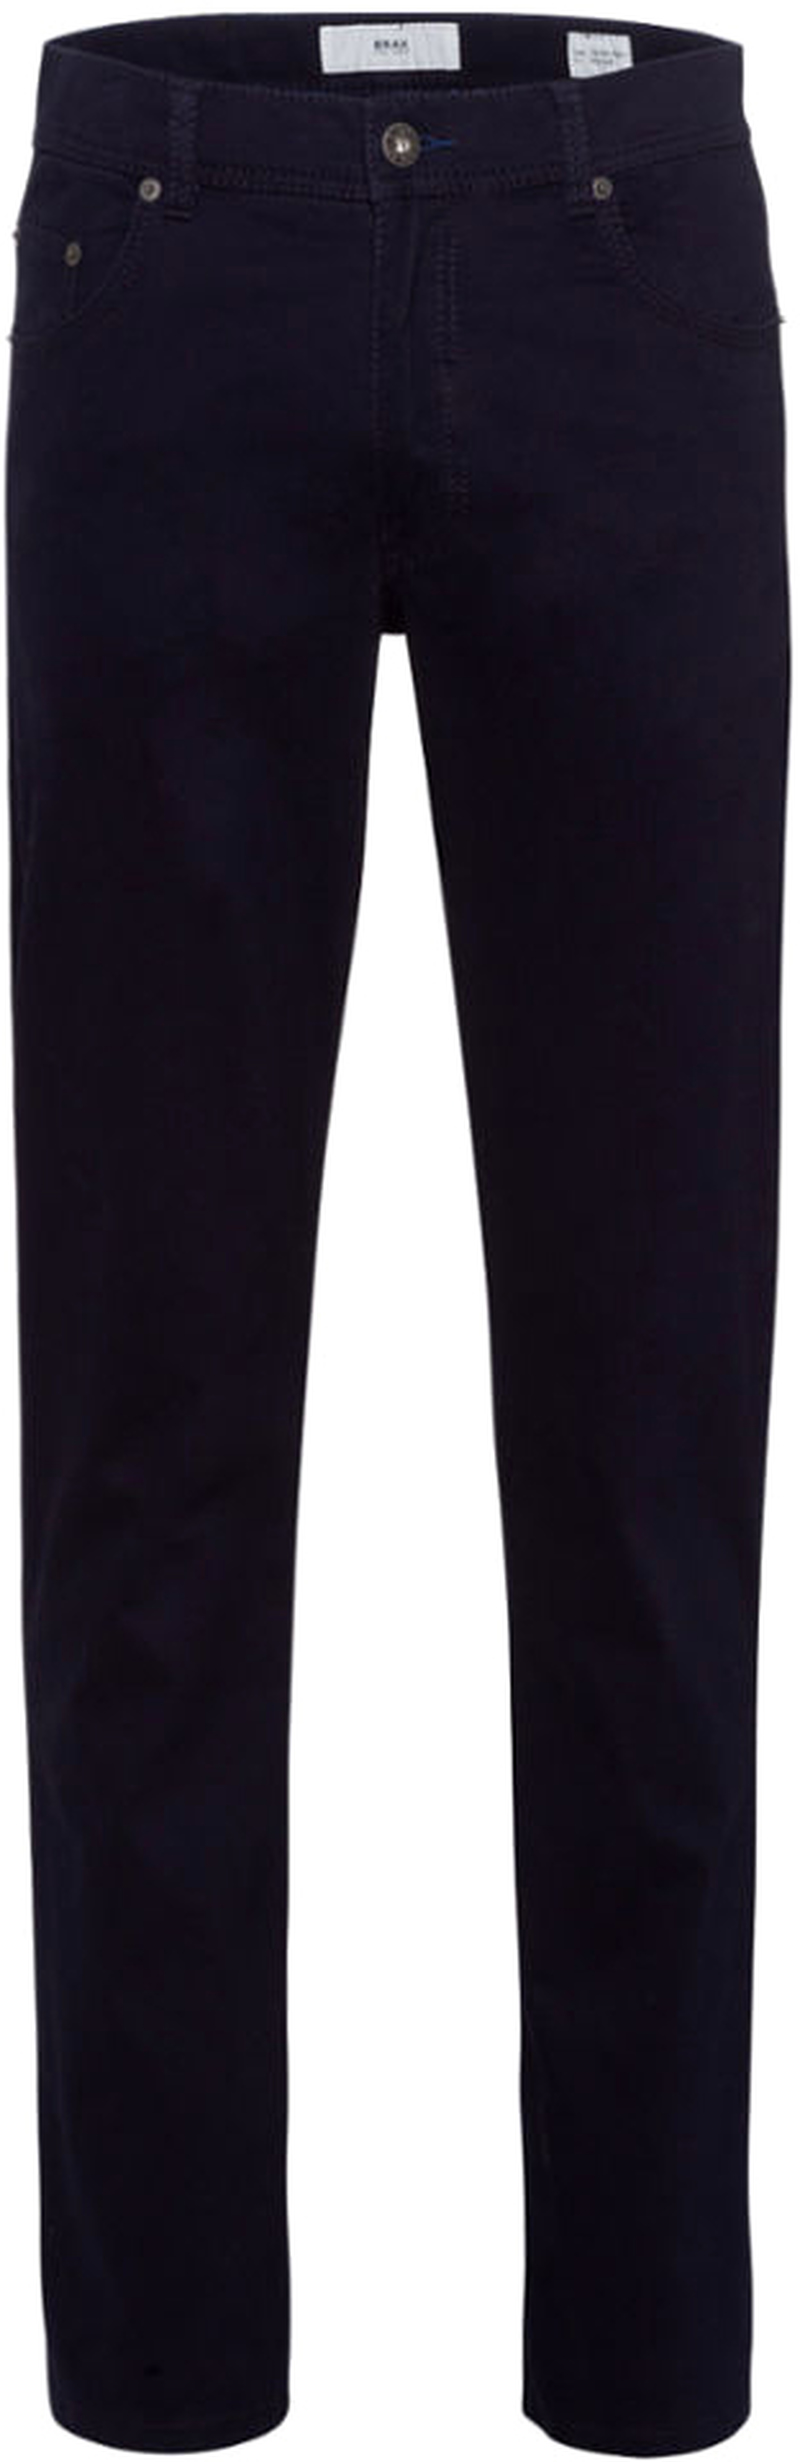 Brax Trousers Cooper Fancy Perma Blue photo 0